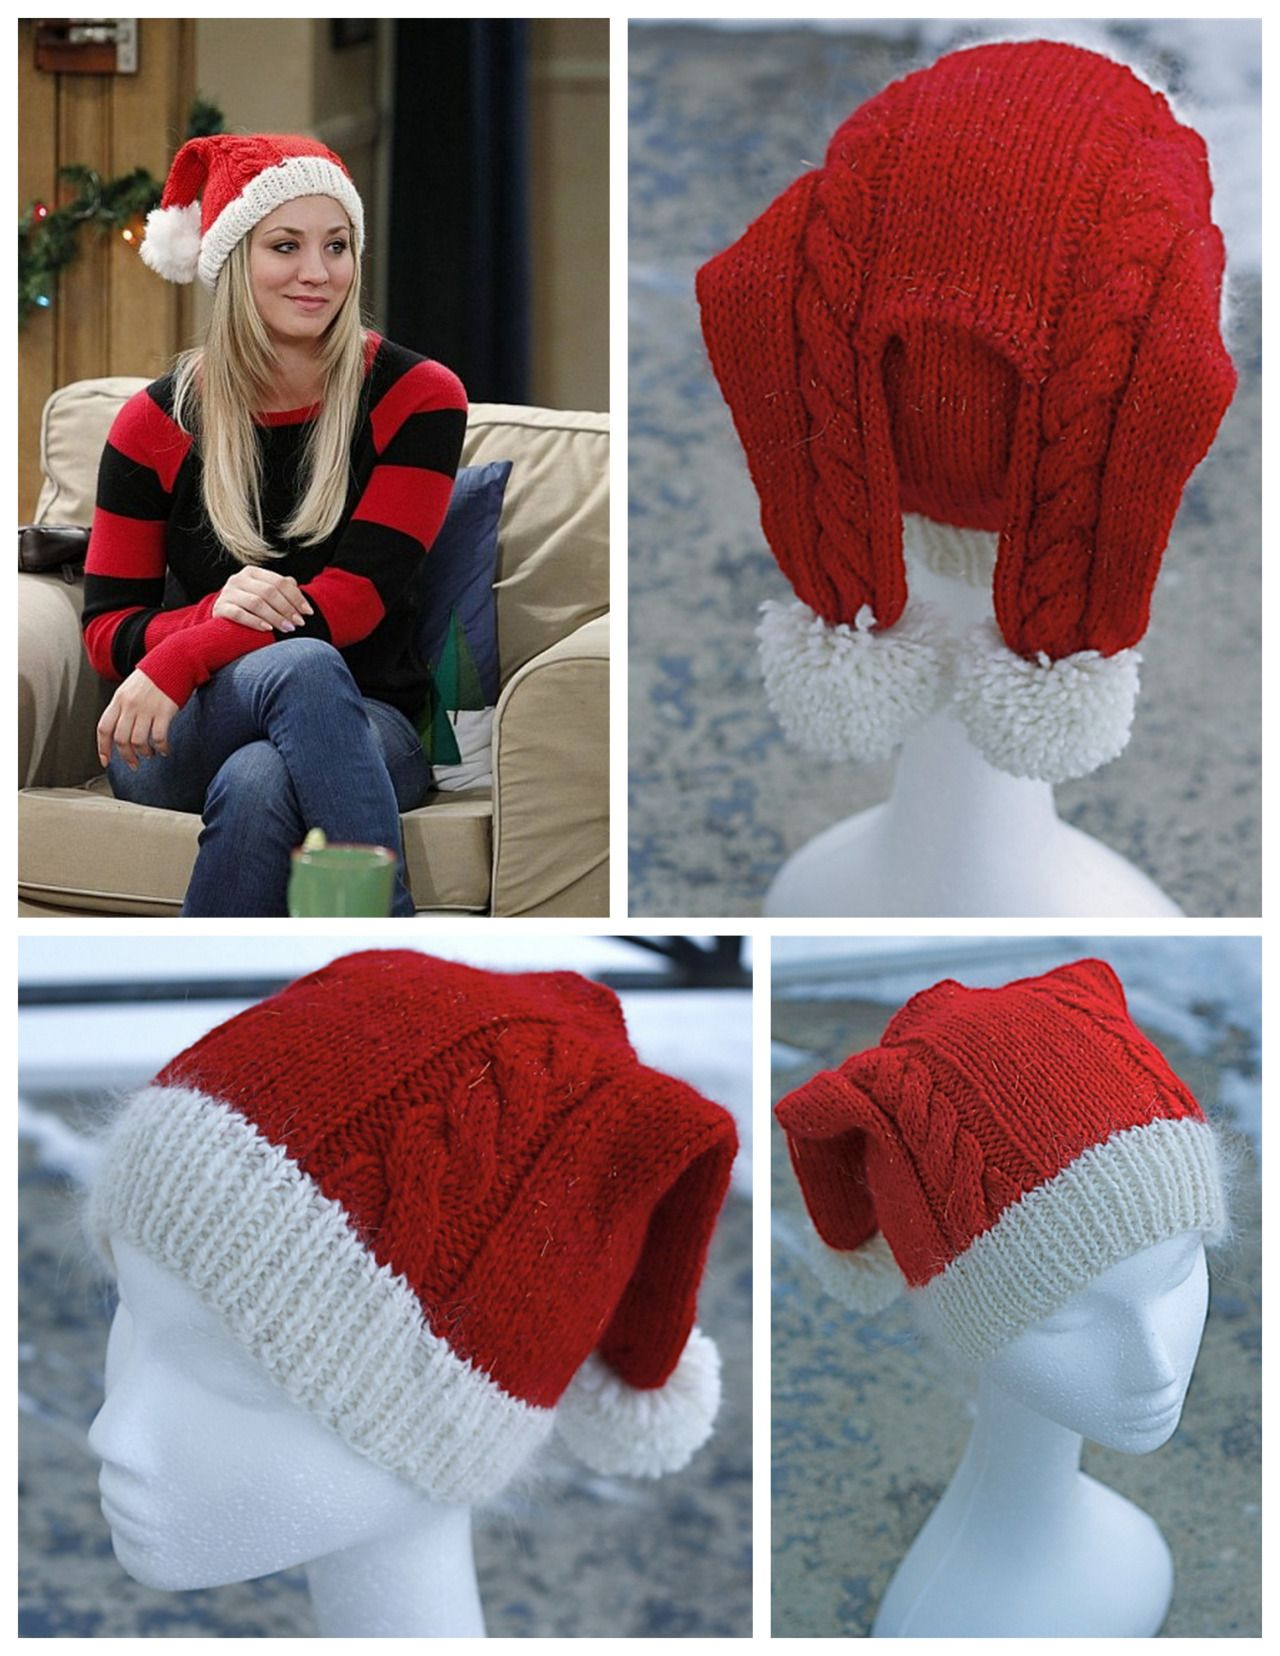 Diy knit pennys hat from the big bang theory free pattern from diy knit pennys hat from the big bang theory free pattern from ravelry user tommy smith bankloansurffo Images